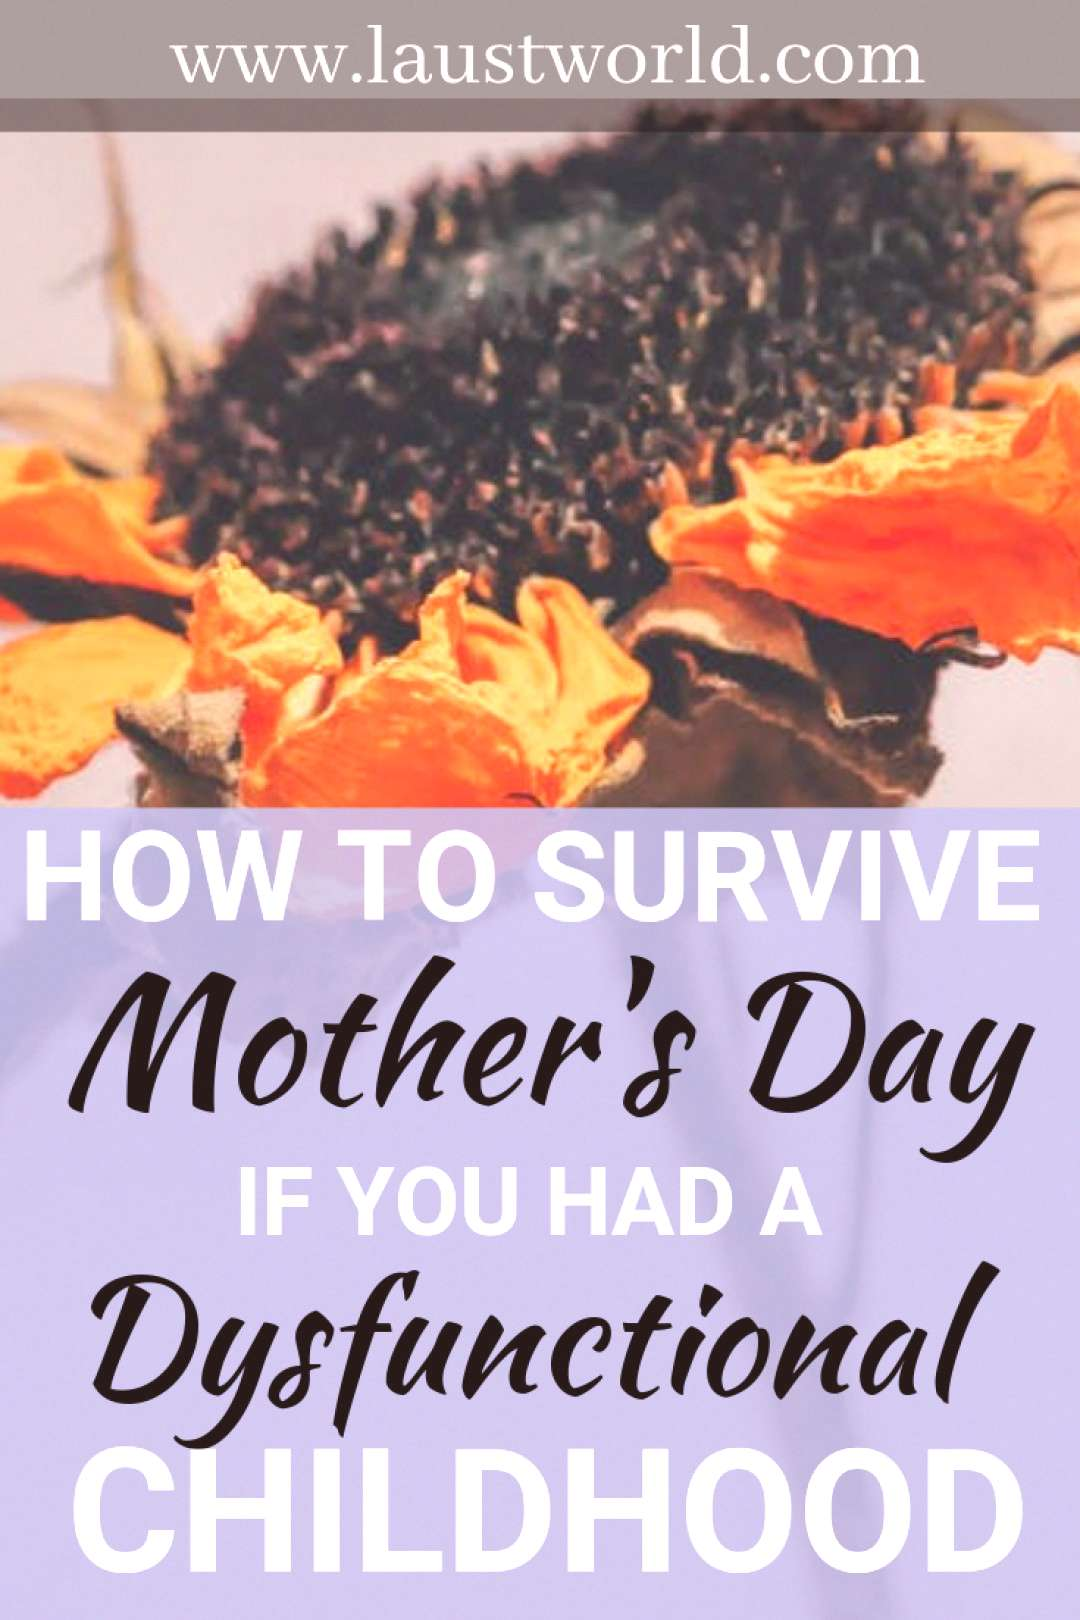 Here are ways to survive Mothers Day if you had a dysfunctional childhood